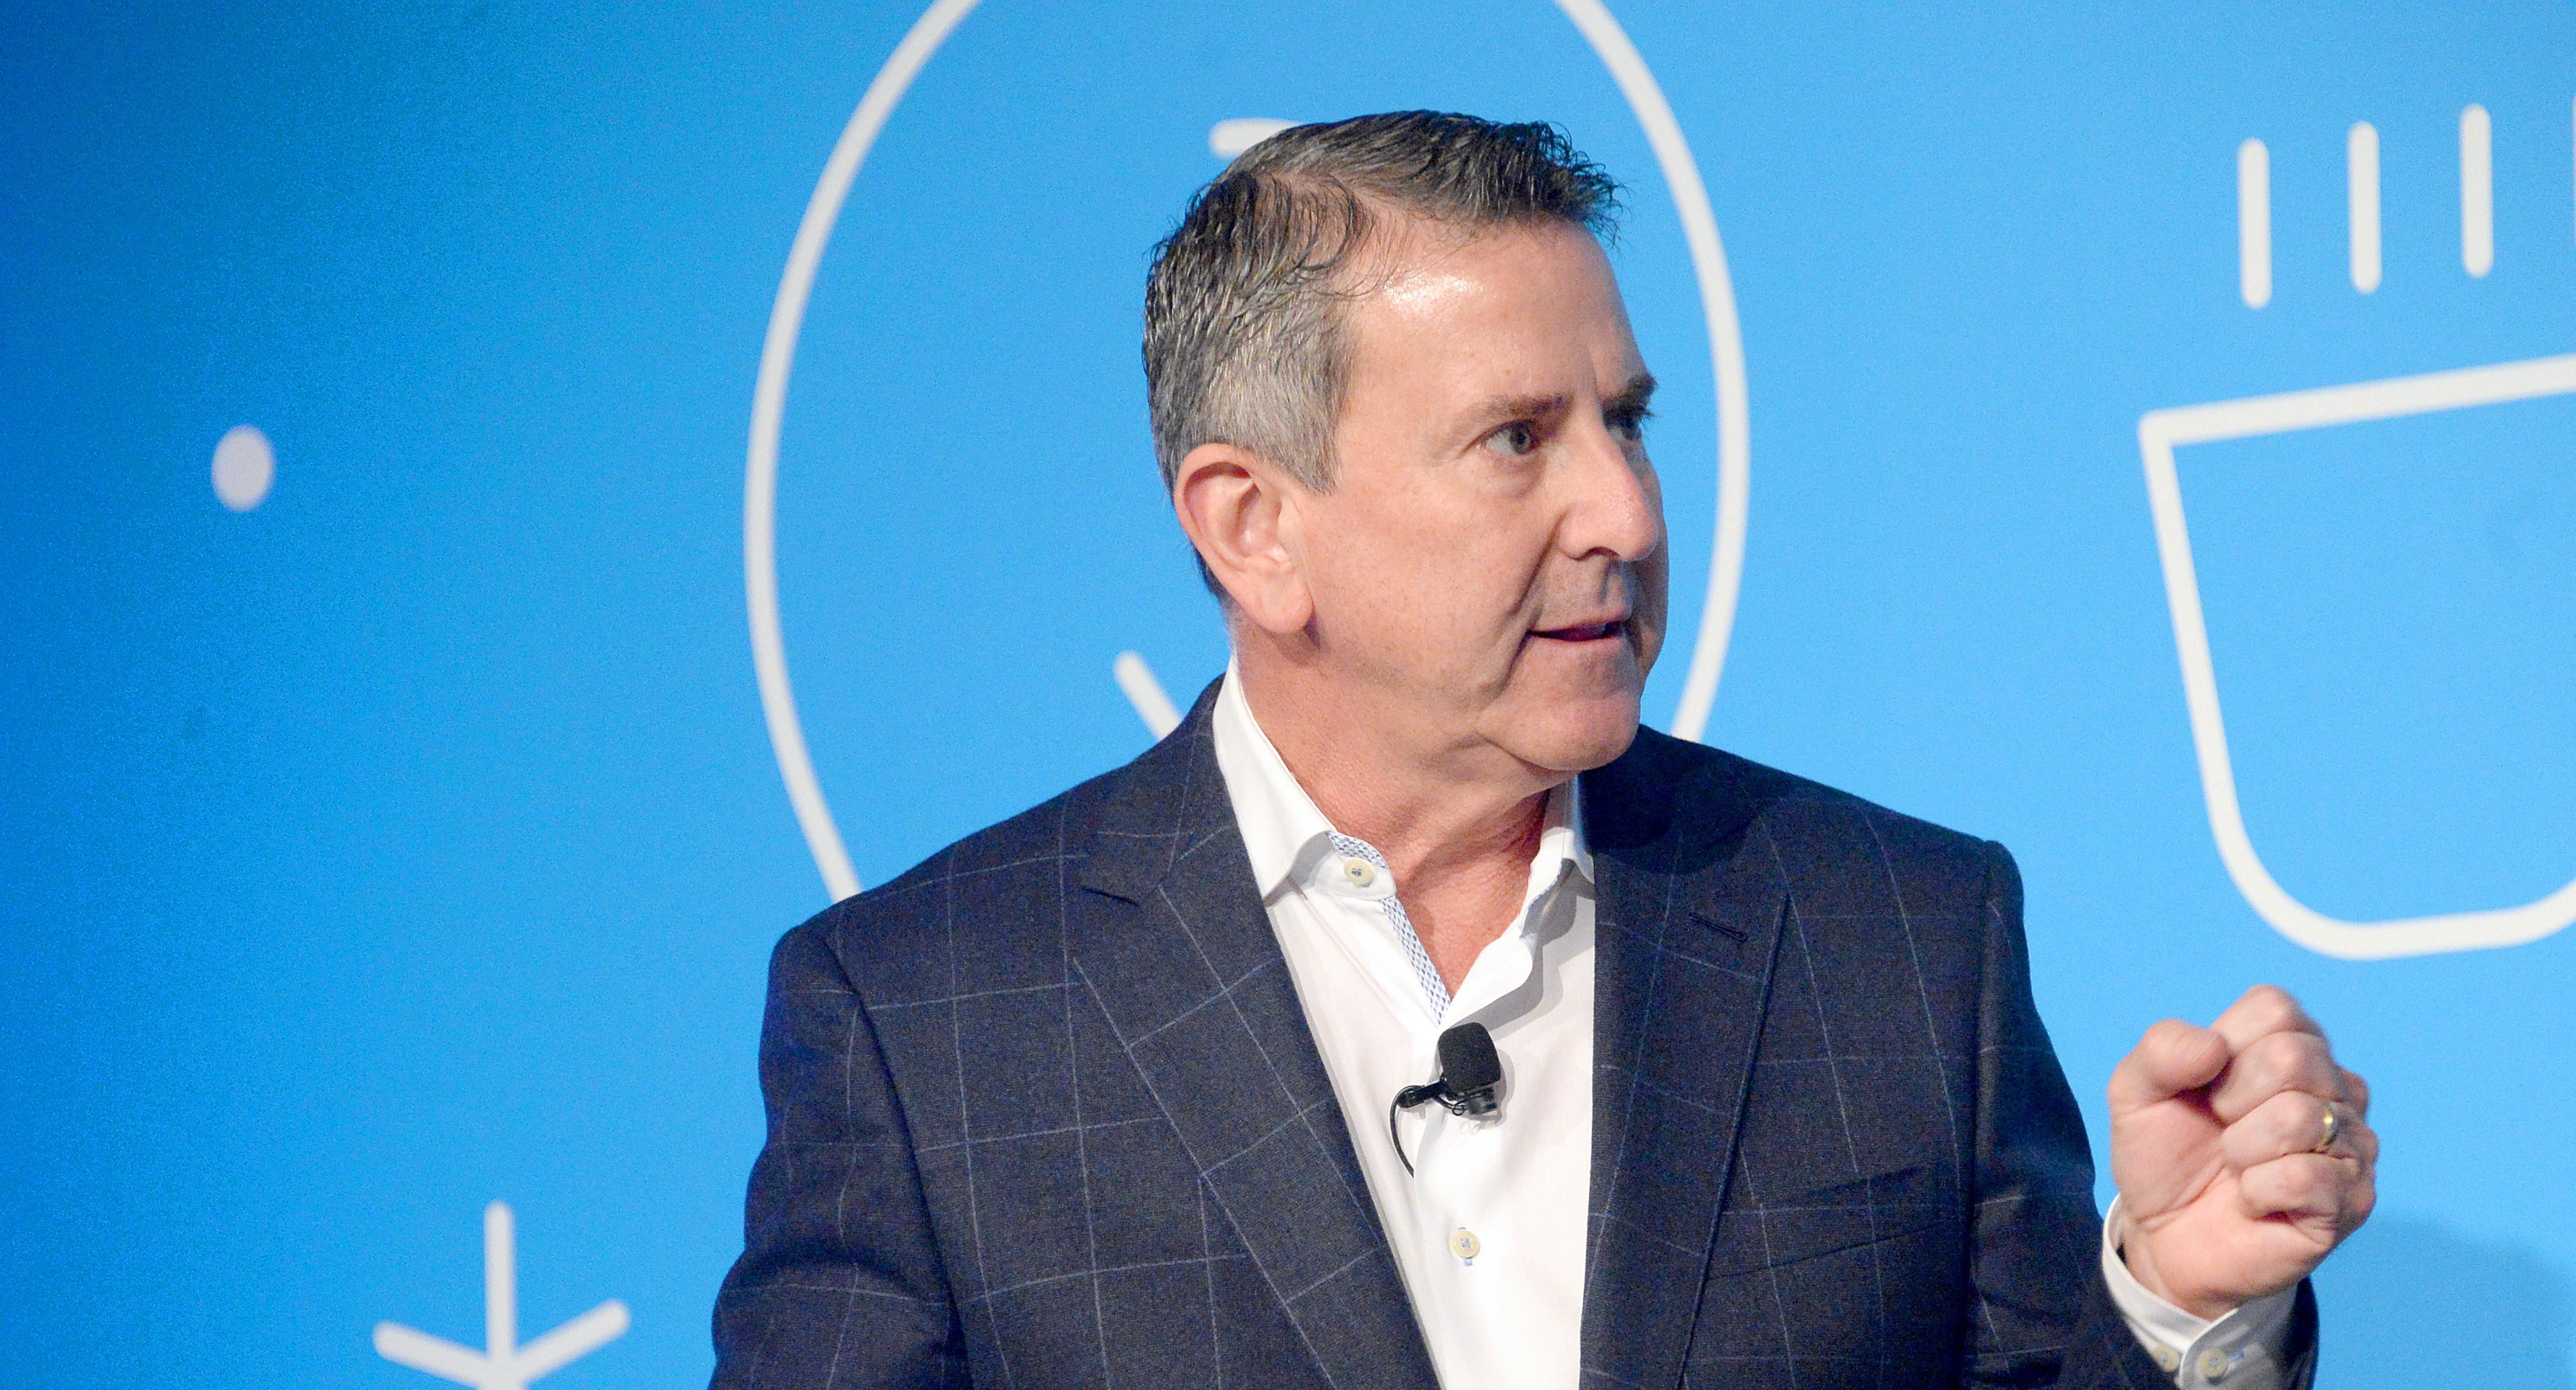 Target CEO Brian Cornell speaking on stage